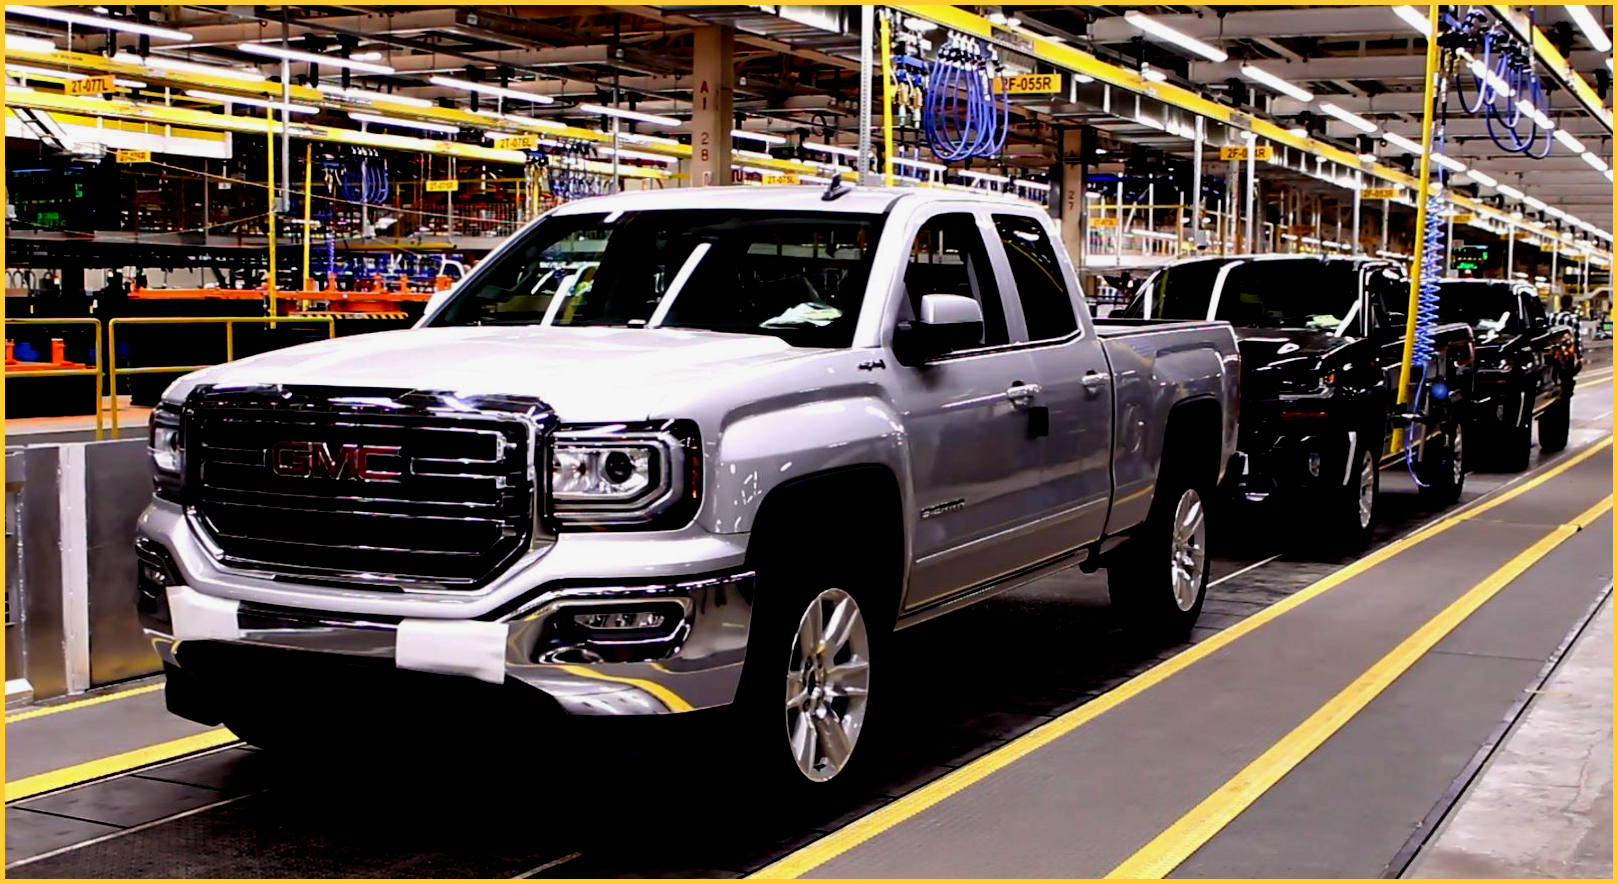 AutoInformed.com on Boycott of GM products in Canada